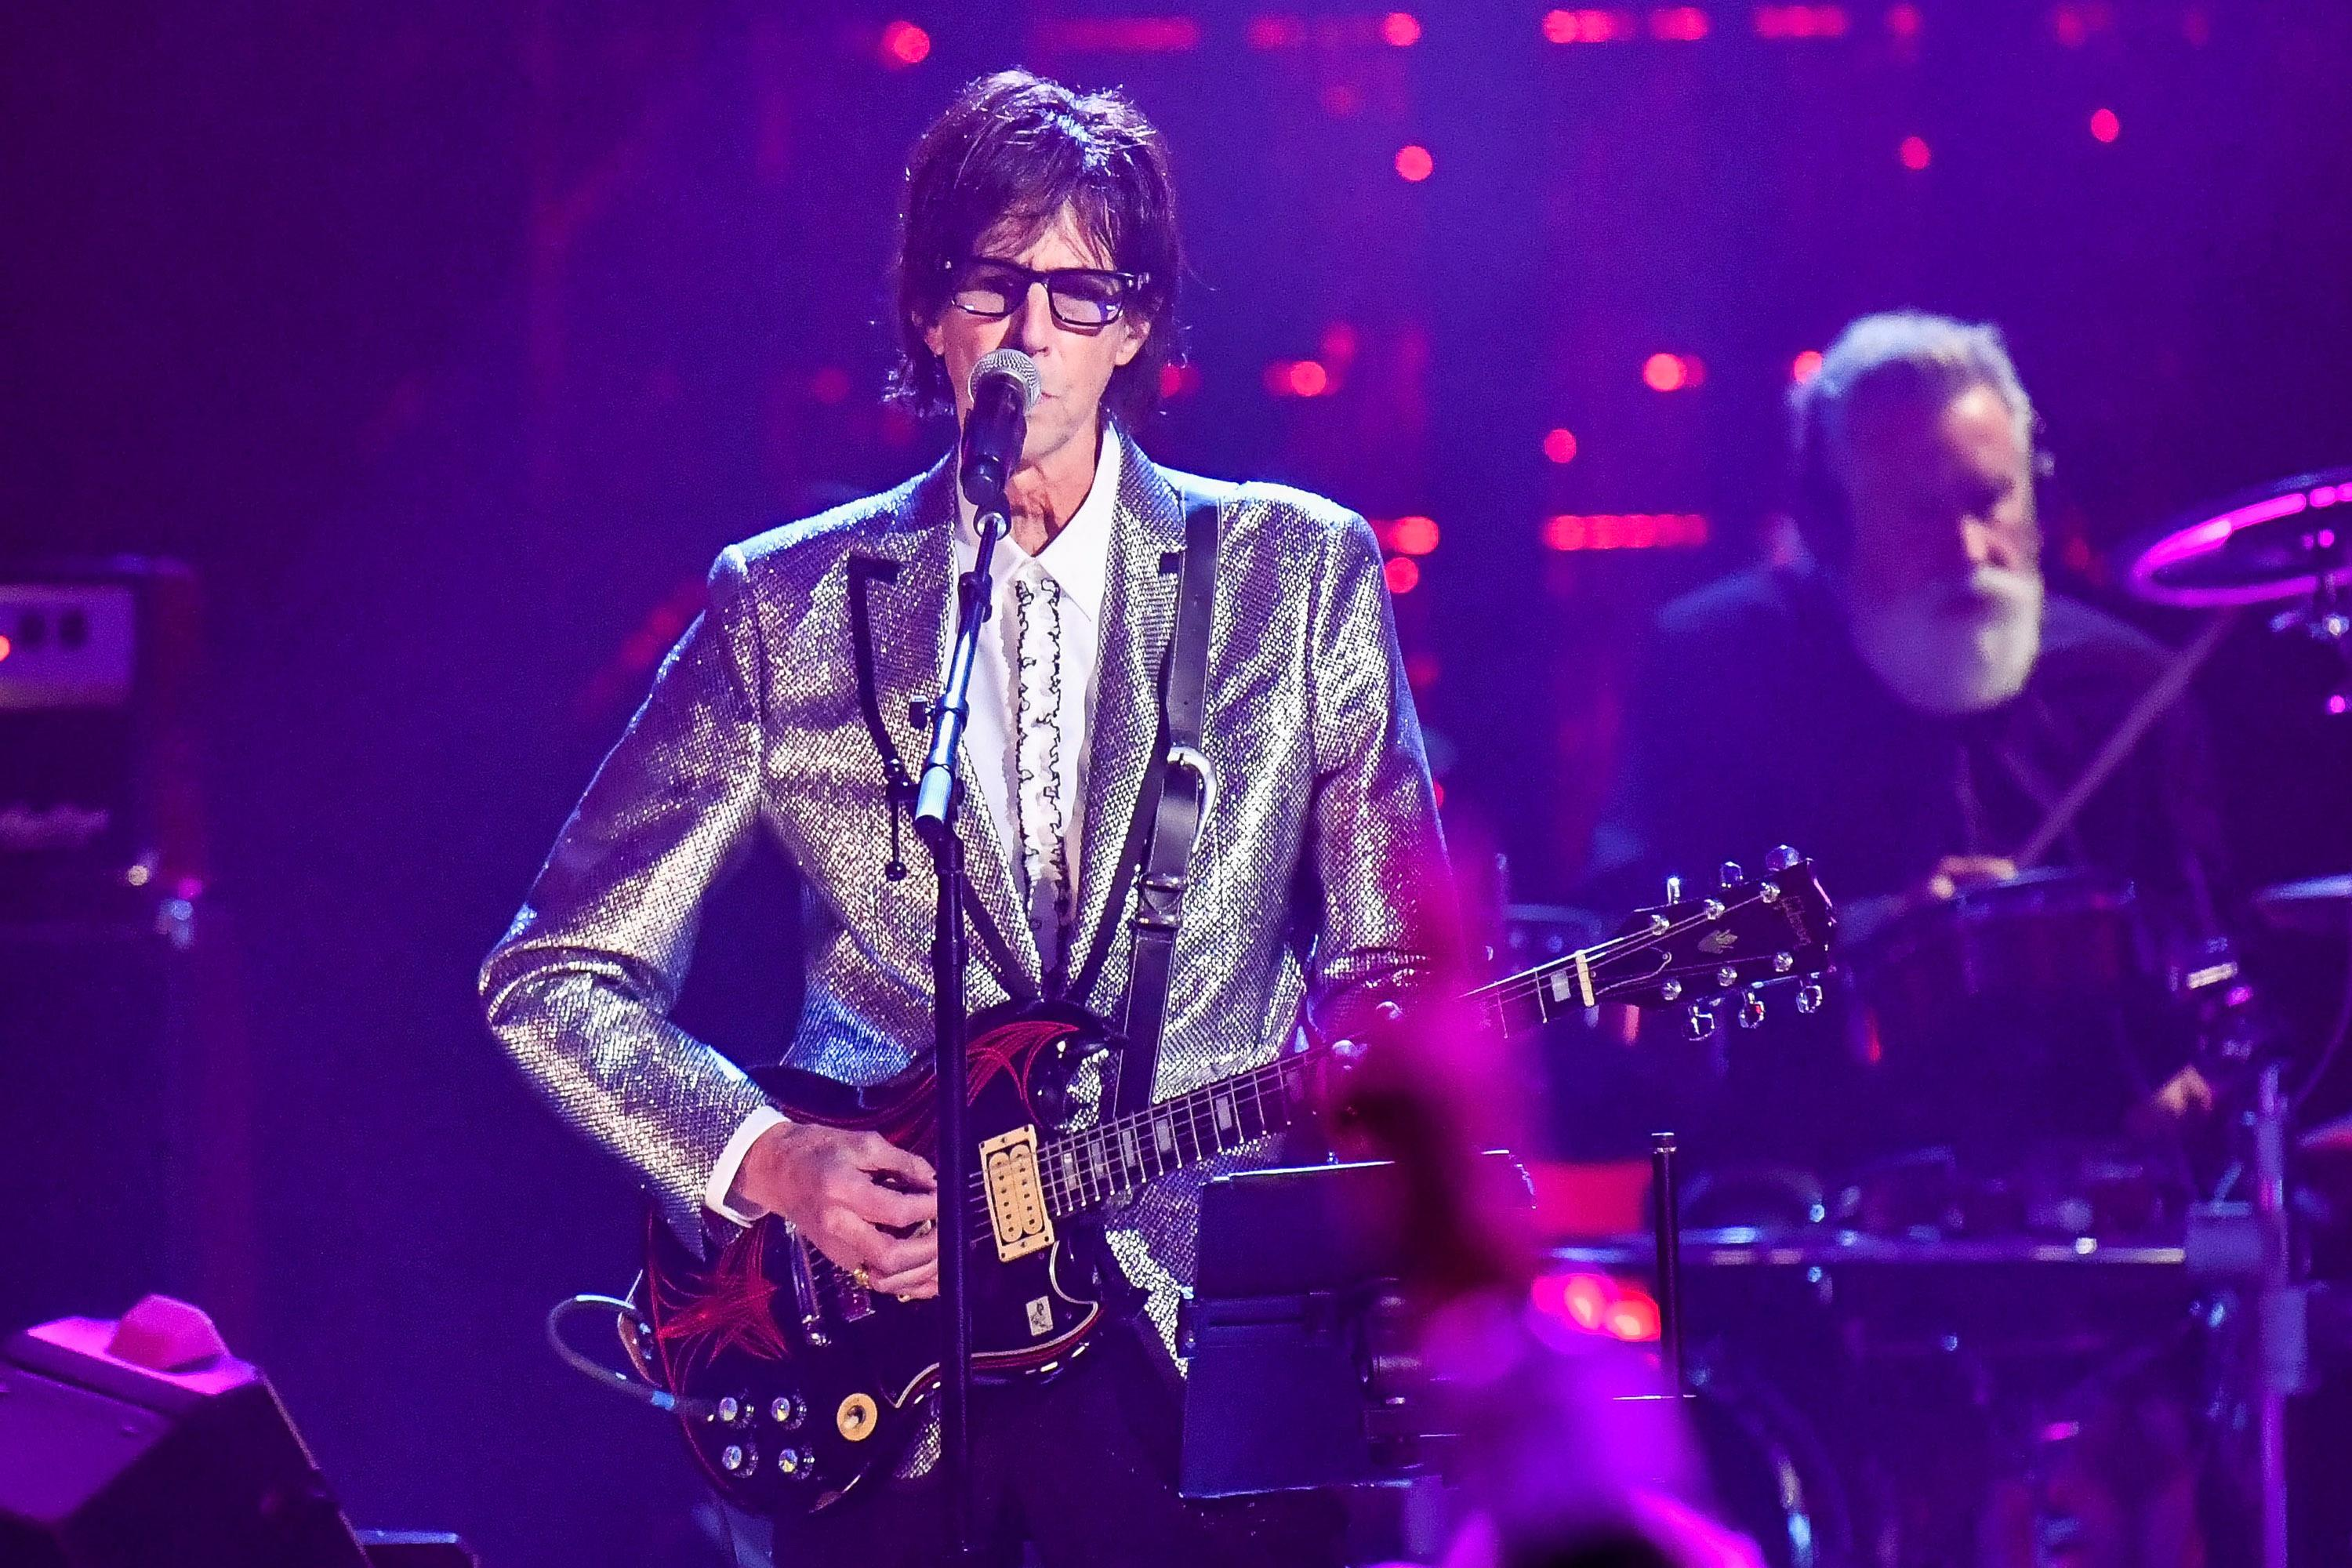 Since you're gone: Remembering the Cars' rock pioneer Ric Ocasek, dead at age 75 - Yahoo Entertainment